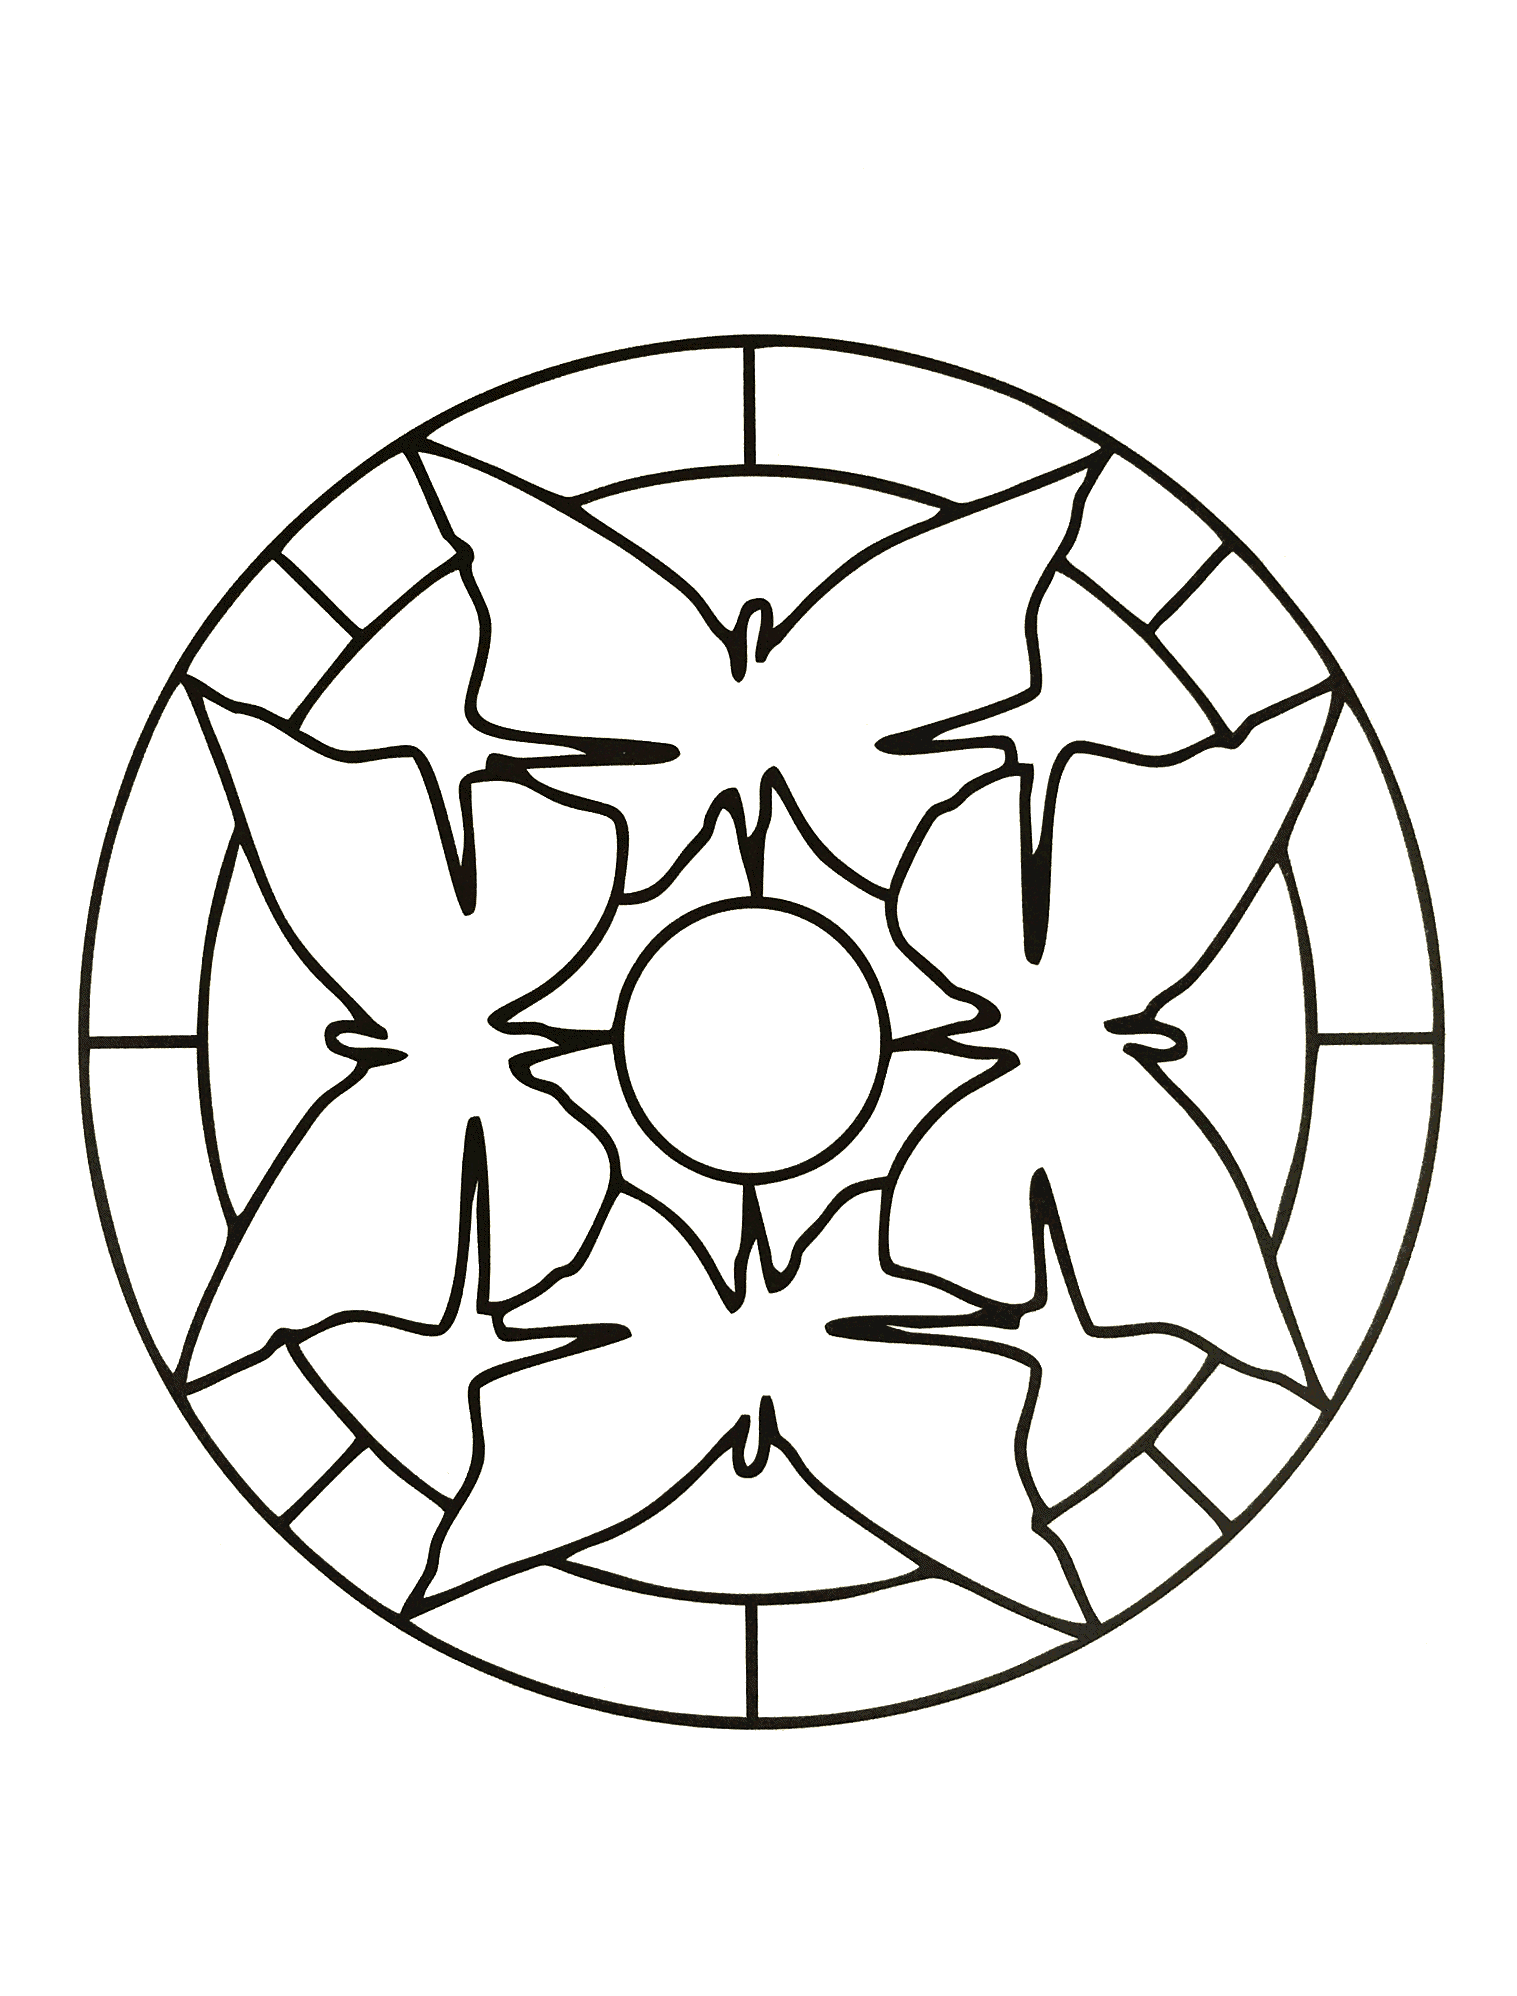 simple mandala 35 from the gallery kids mandalas - Simple Mandala Coloring Pages Kid